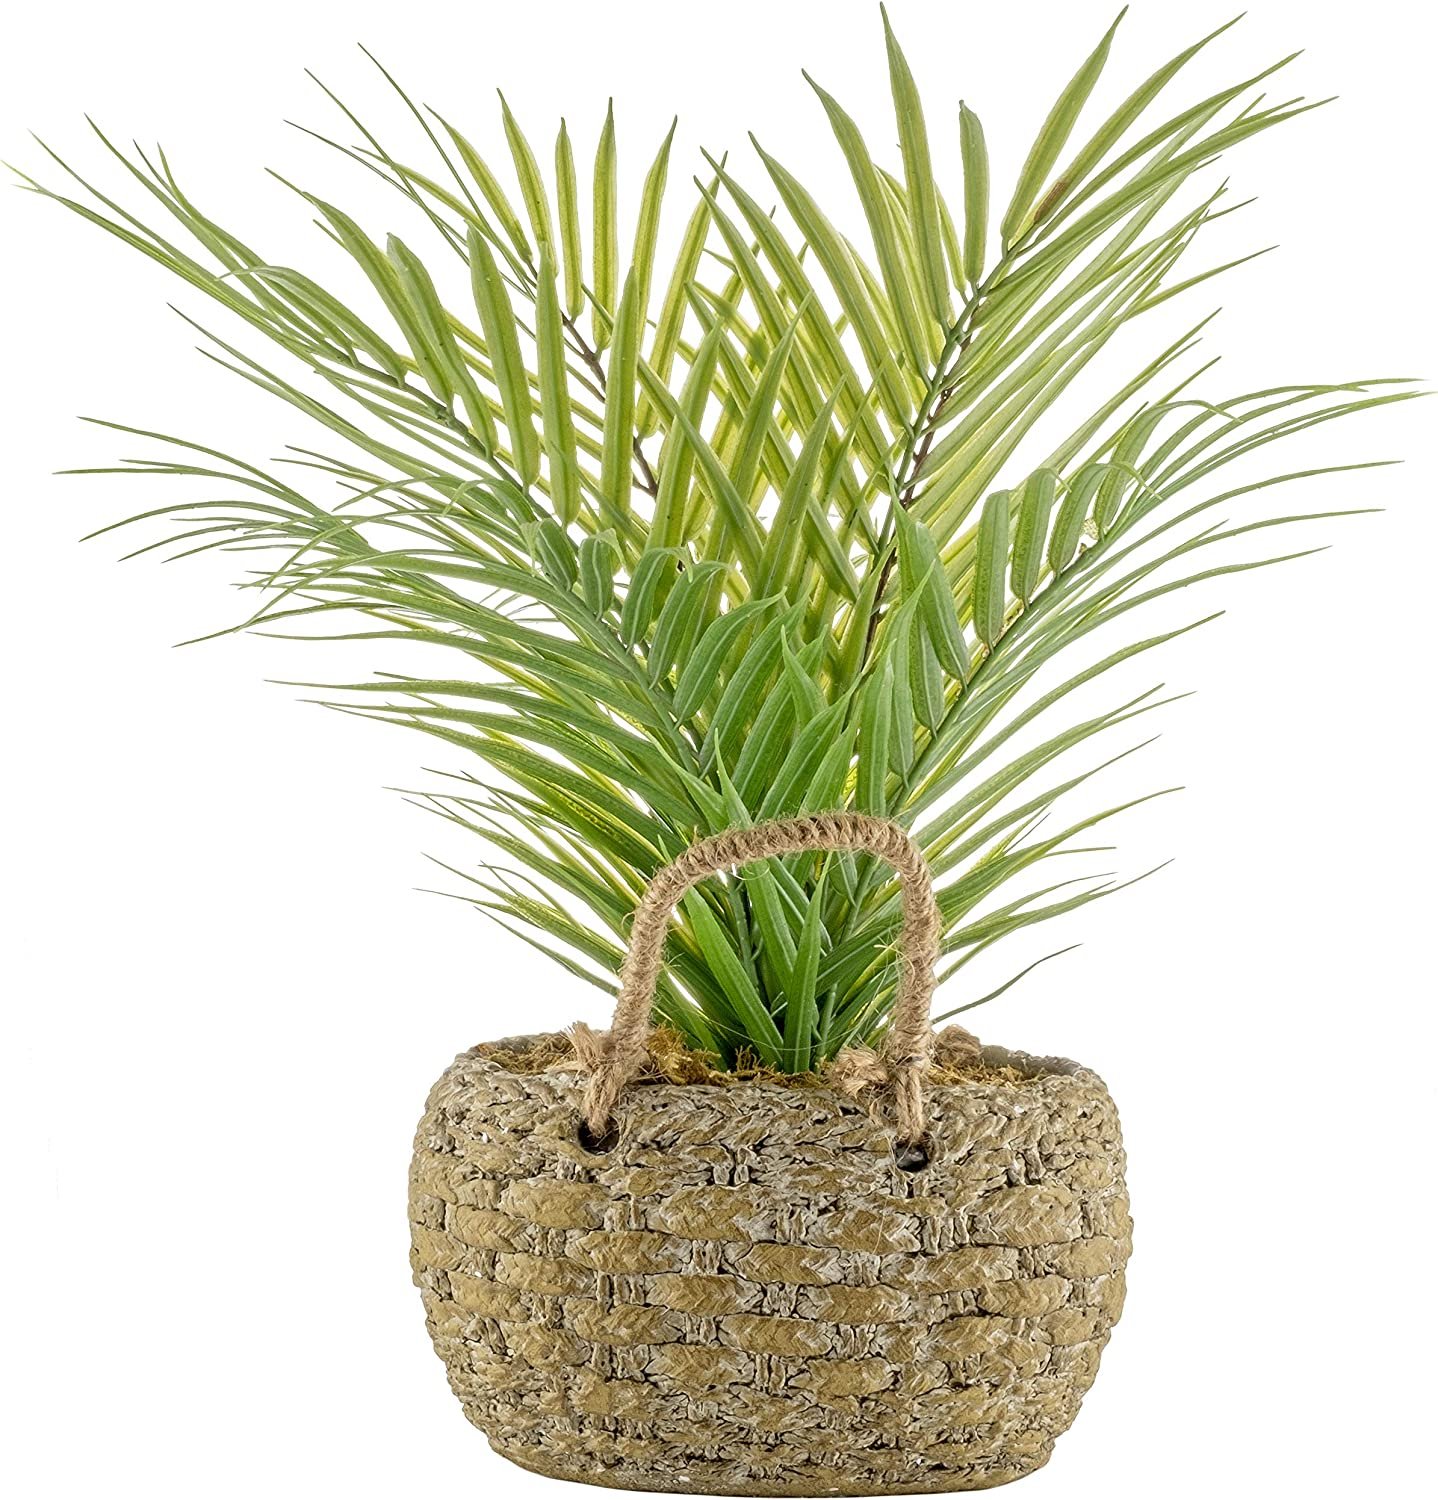 Small Green Artificial Palm Tree in Sculpted Basket Weave Cement Pot for Modern Home Decor - 16.5 in/42cms Tall - Living Room, Kitchen, Bedroom, Office, Dining, Bathroom, Indoors, Outdoors